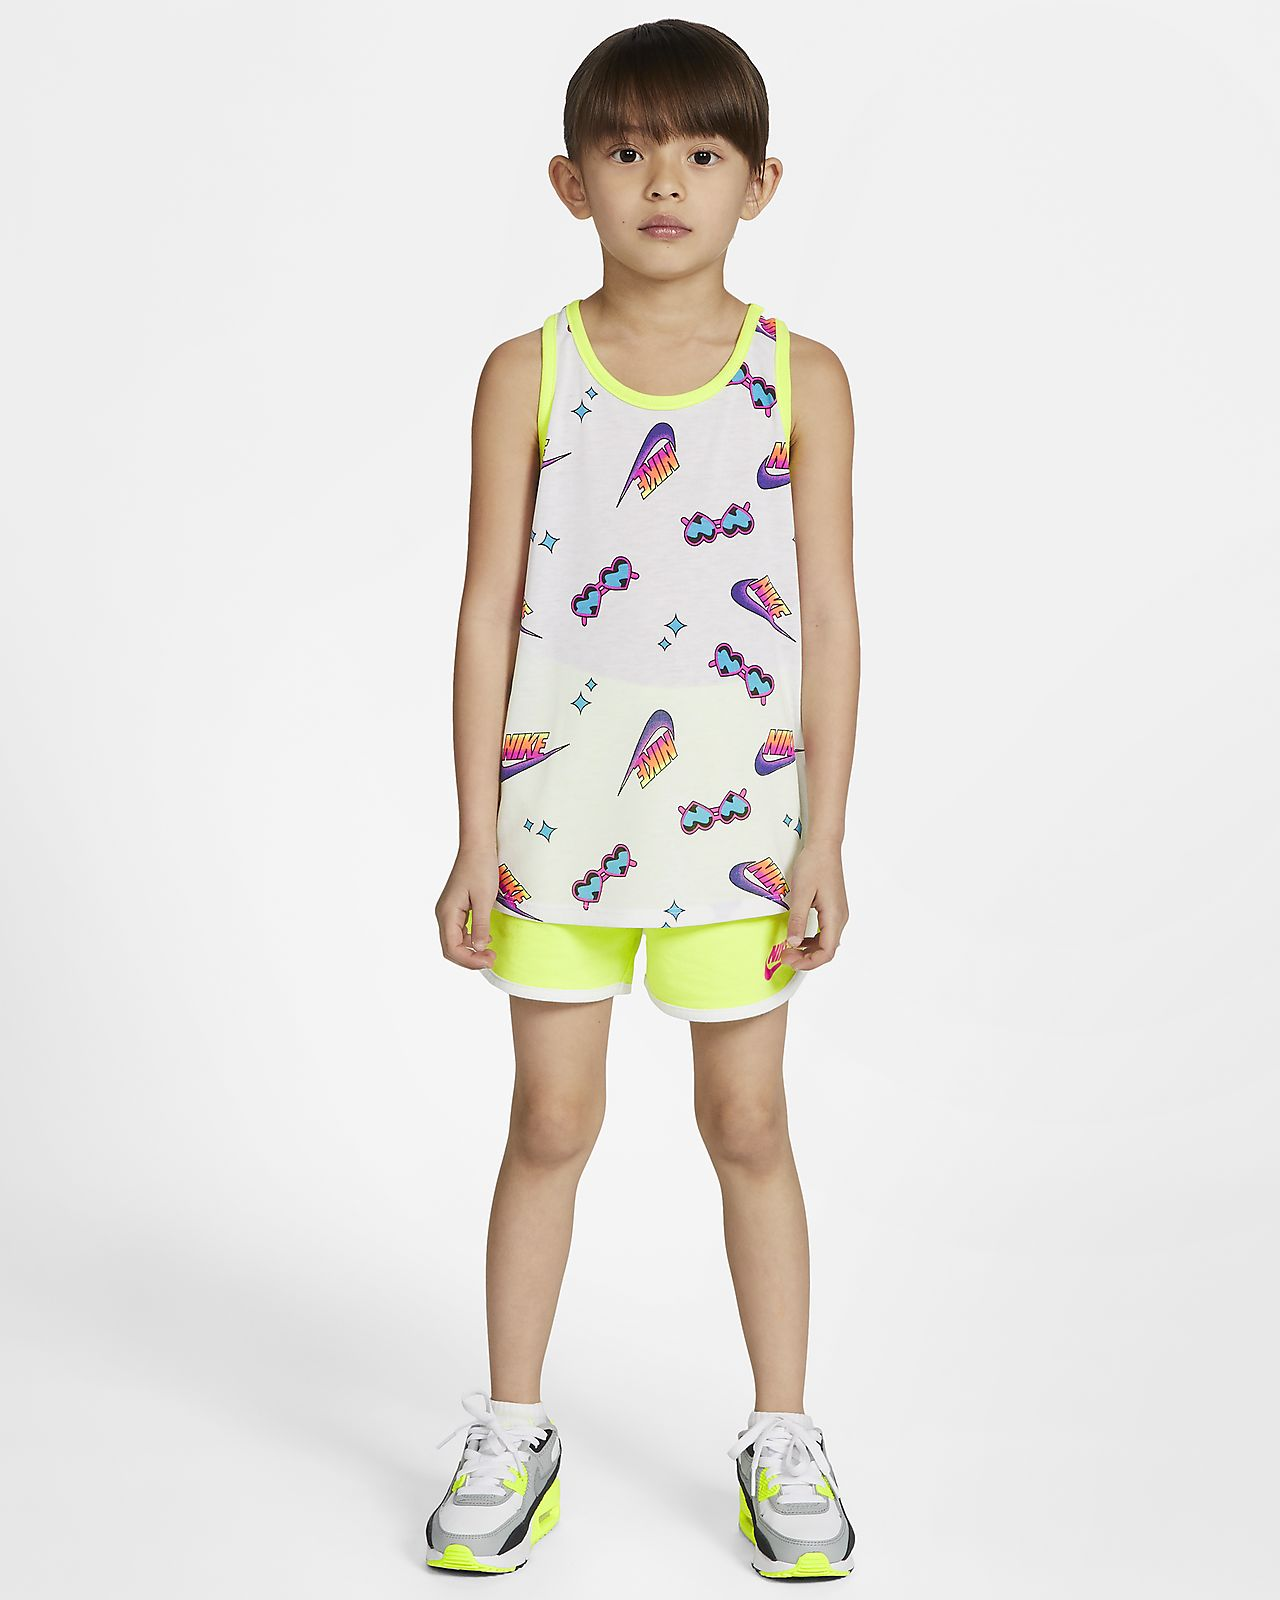 Nike Little Kids' Top and Shorts Set